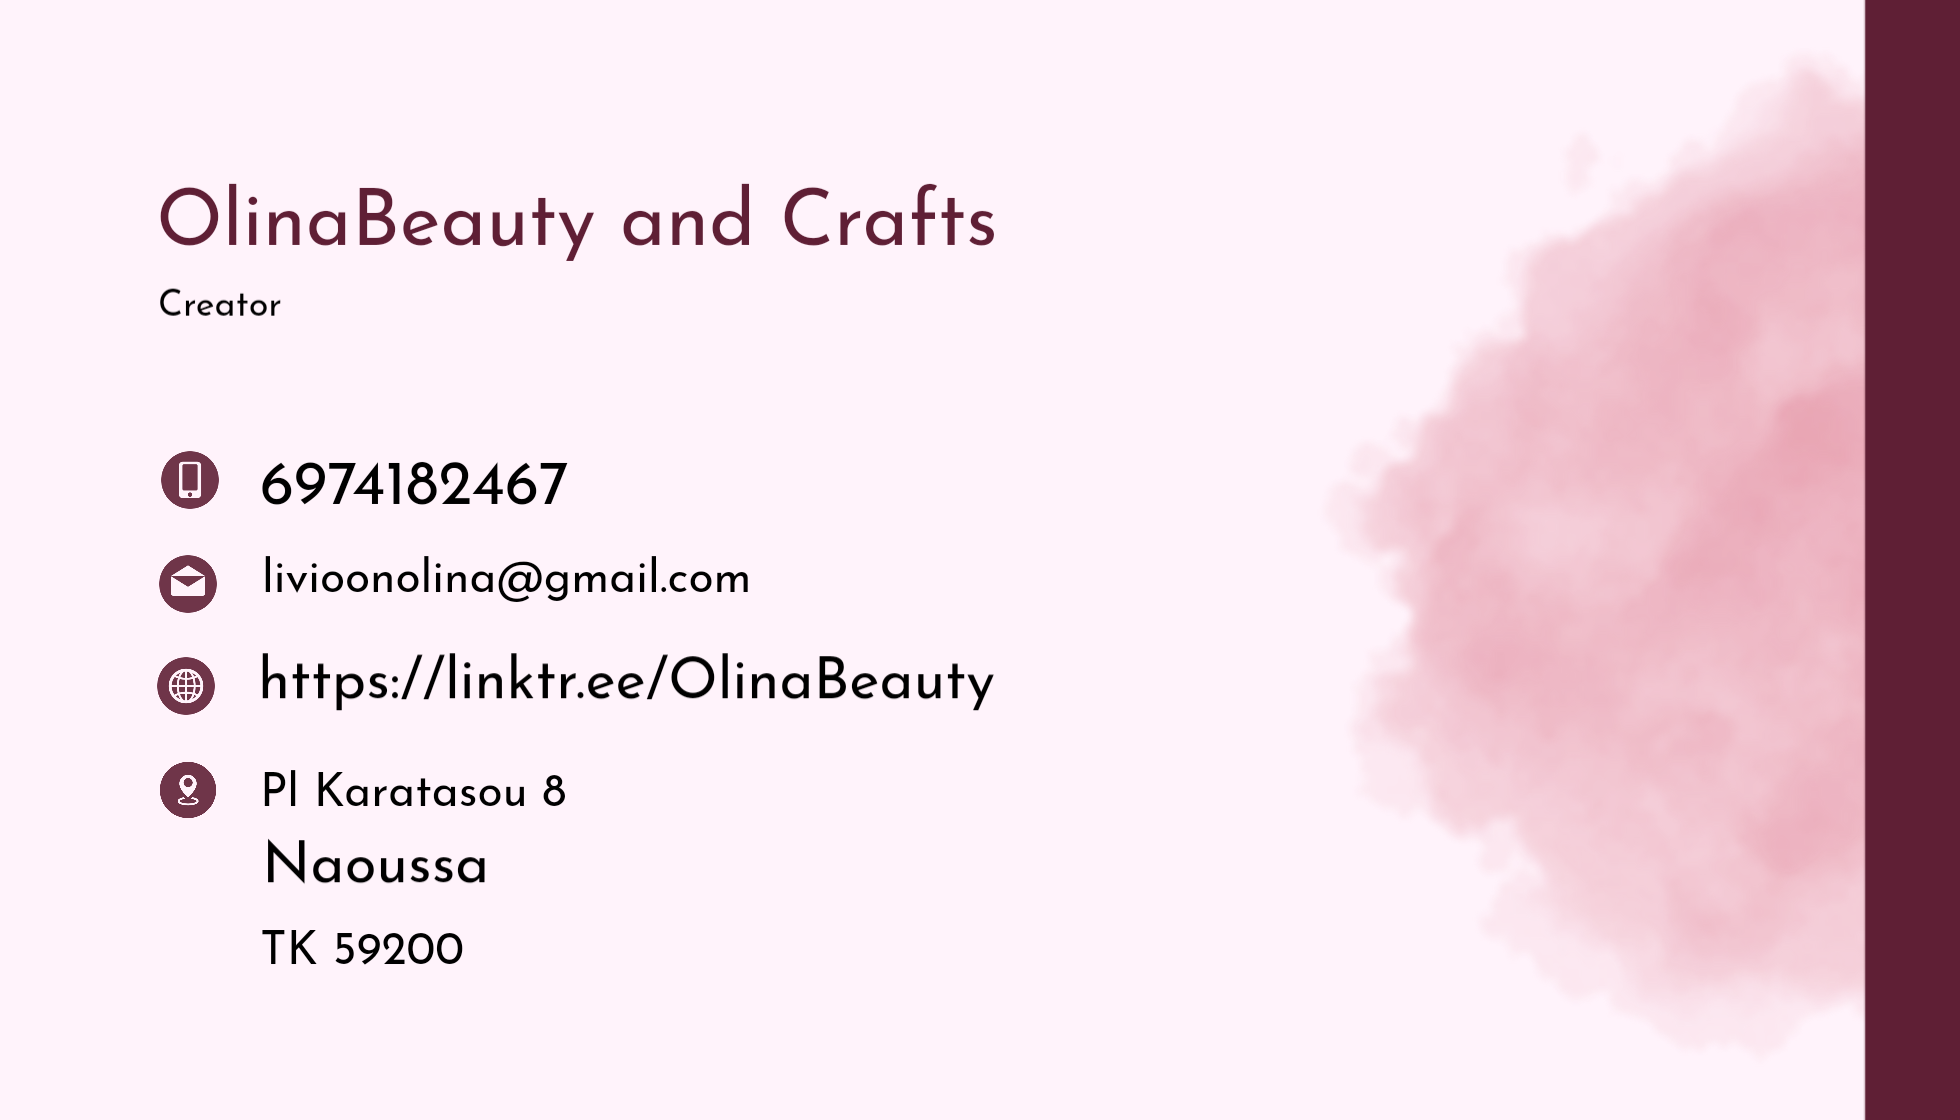 OlinaBeauty and Crafts